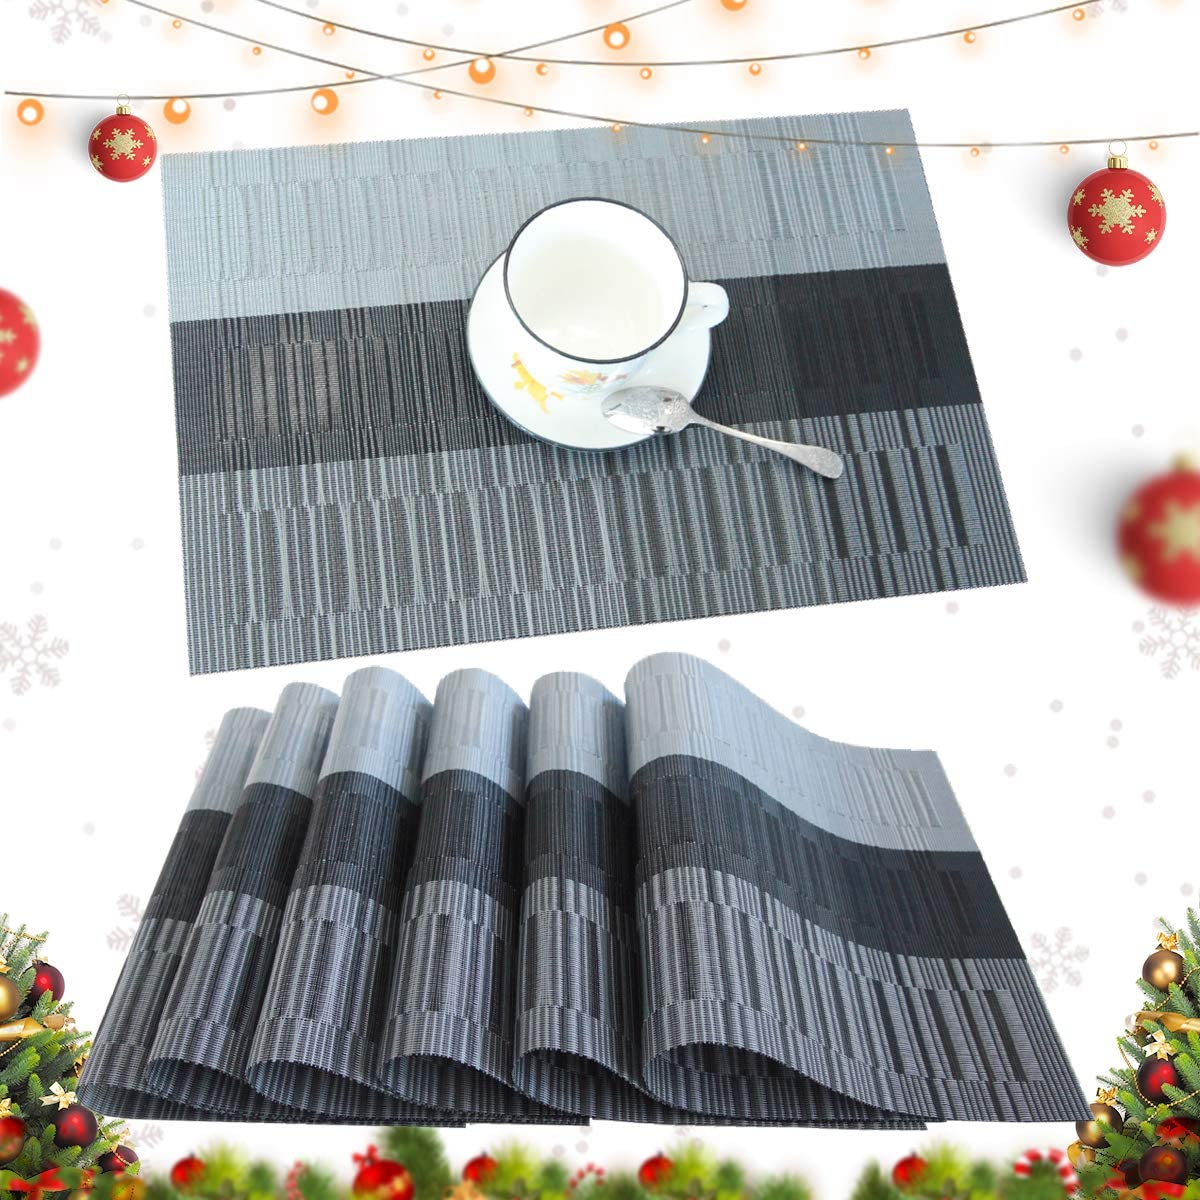 profurni Placemats for Dining Table Heat Resistant Kitchen Table Mats Set of 6 Washable PVC Place Mats Stain Resistant Non-Slip Placemat for Hotel Office,Black Grey